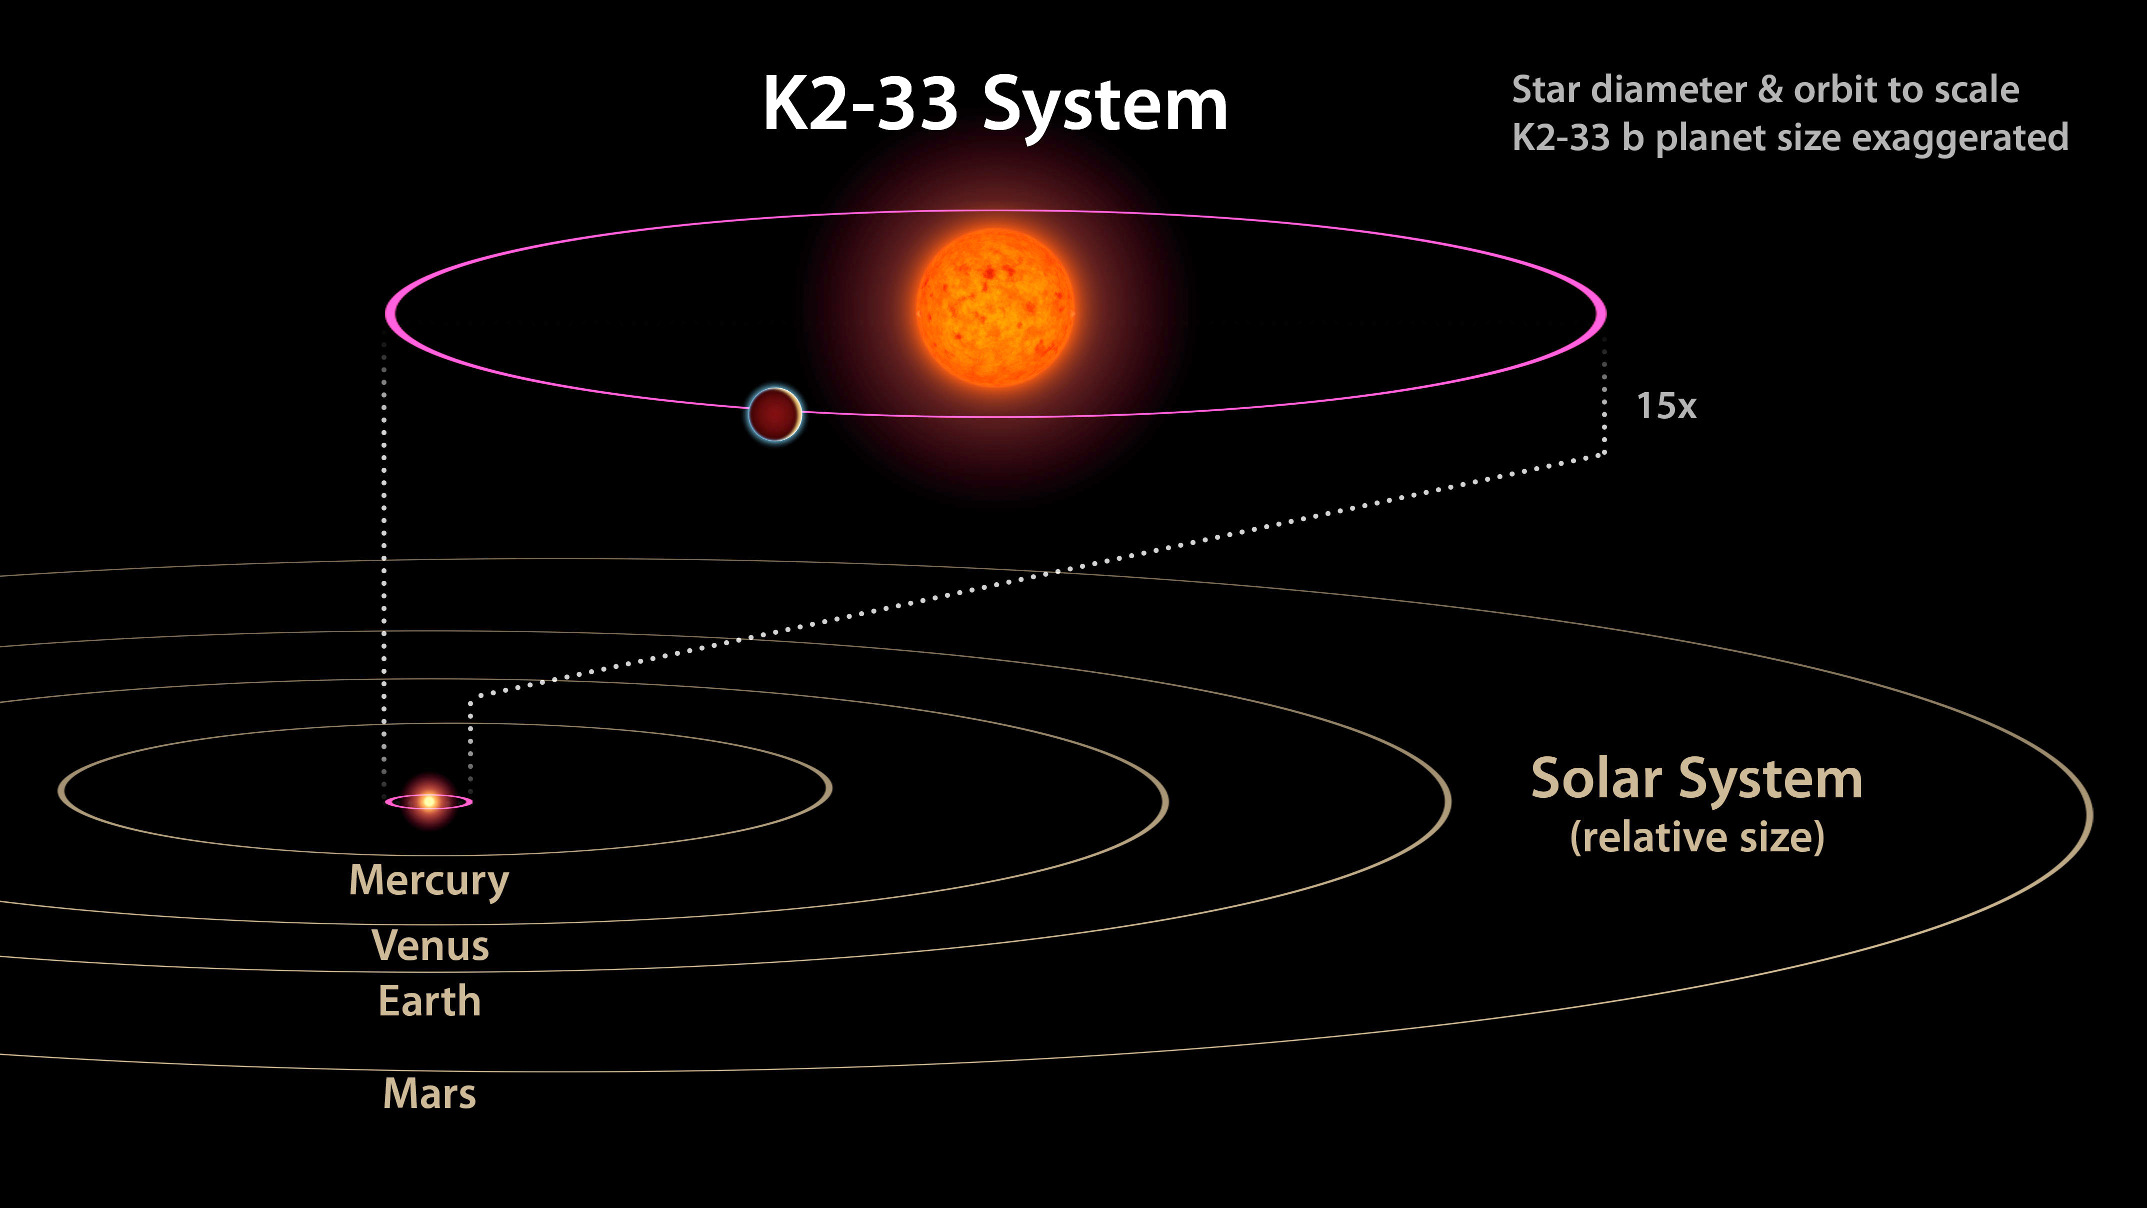 This image shows the K2-33 system, and its planet K2-33b, compared to our own solar system. The planet has a five-day orbit, whereas Mercury orbits our Sun in 88 days. The planet is also nearly 10 times closer to its star than Mercury is to the Sun. Image credit: NASA/JPL-Caltech.